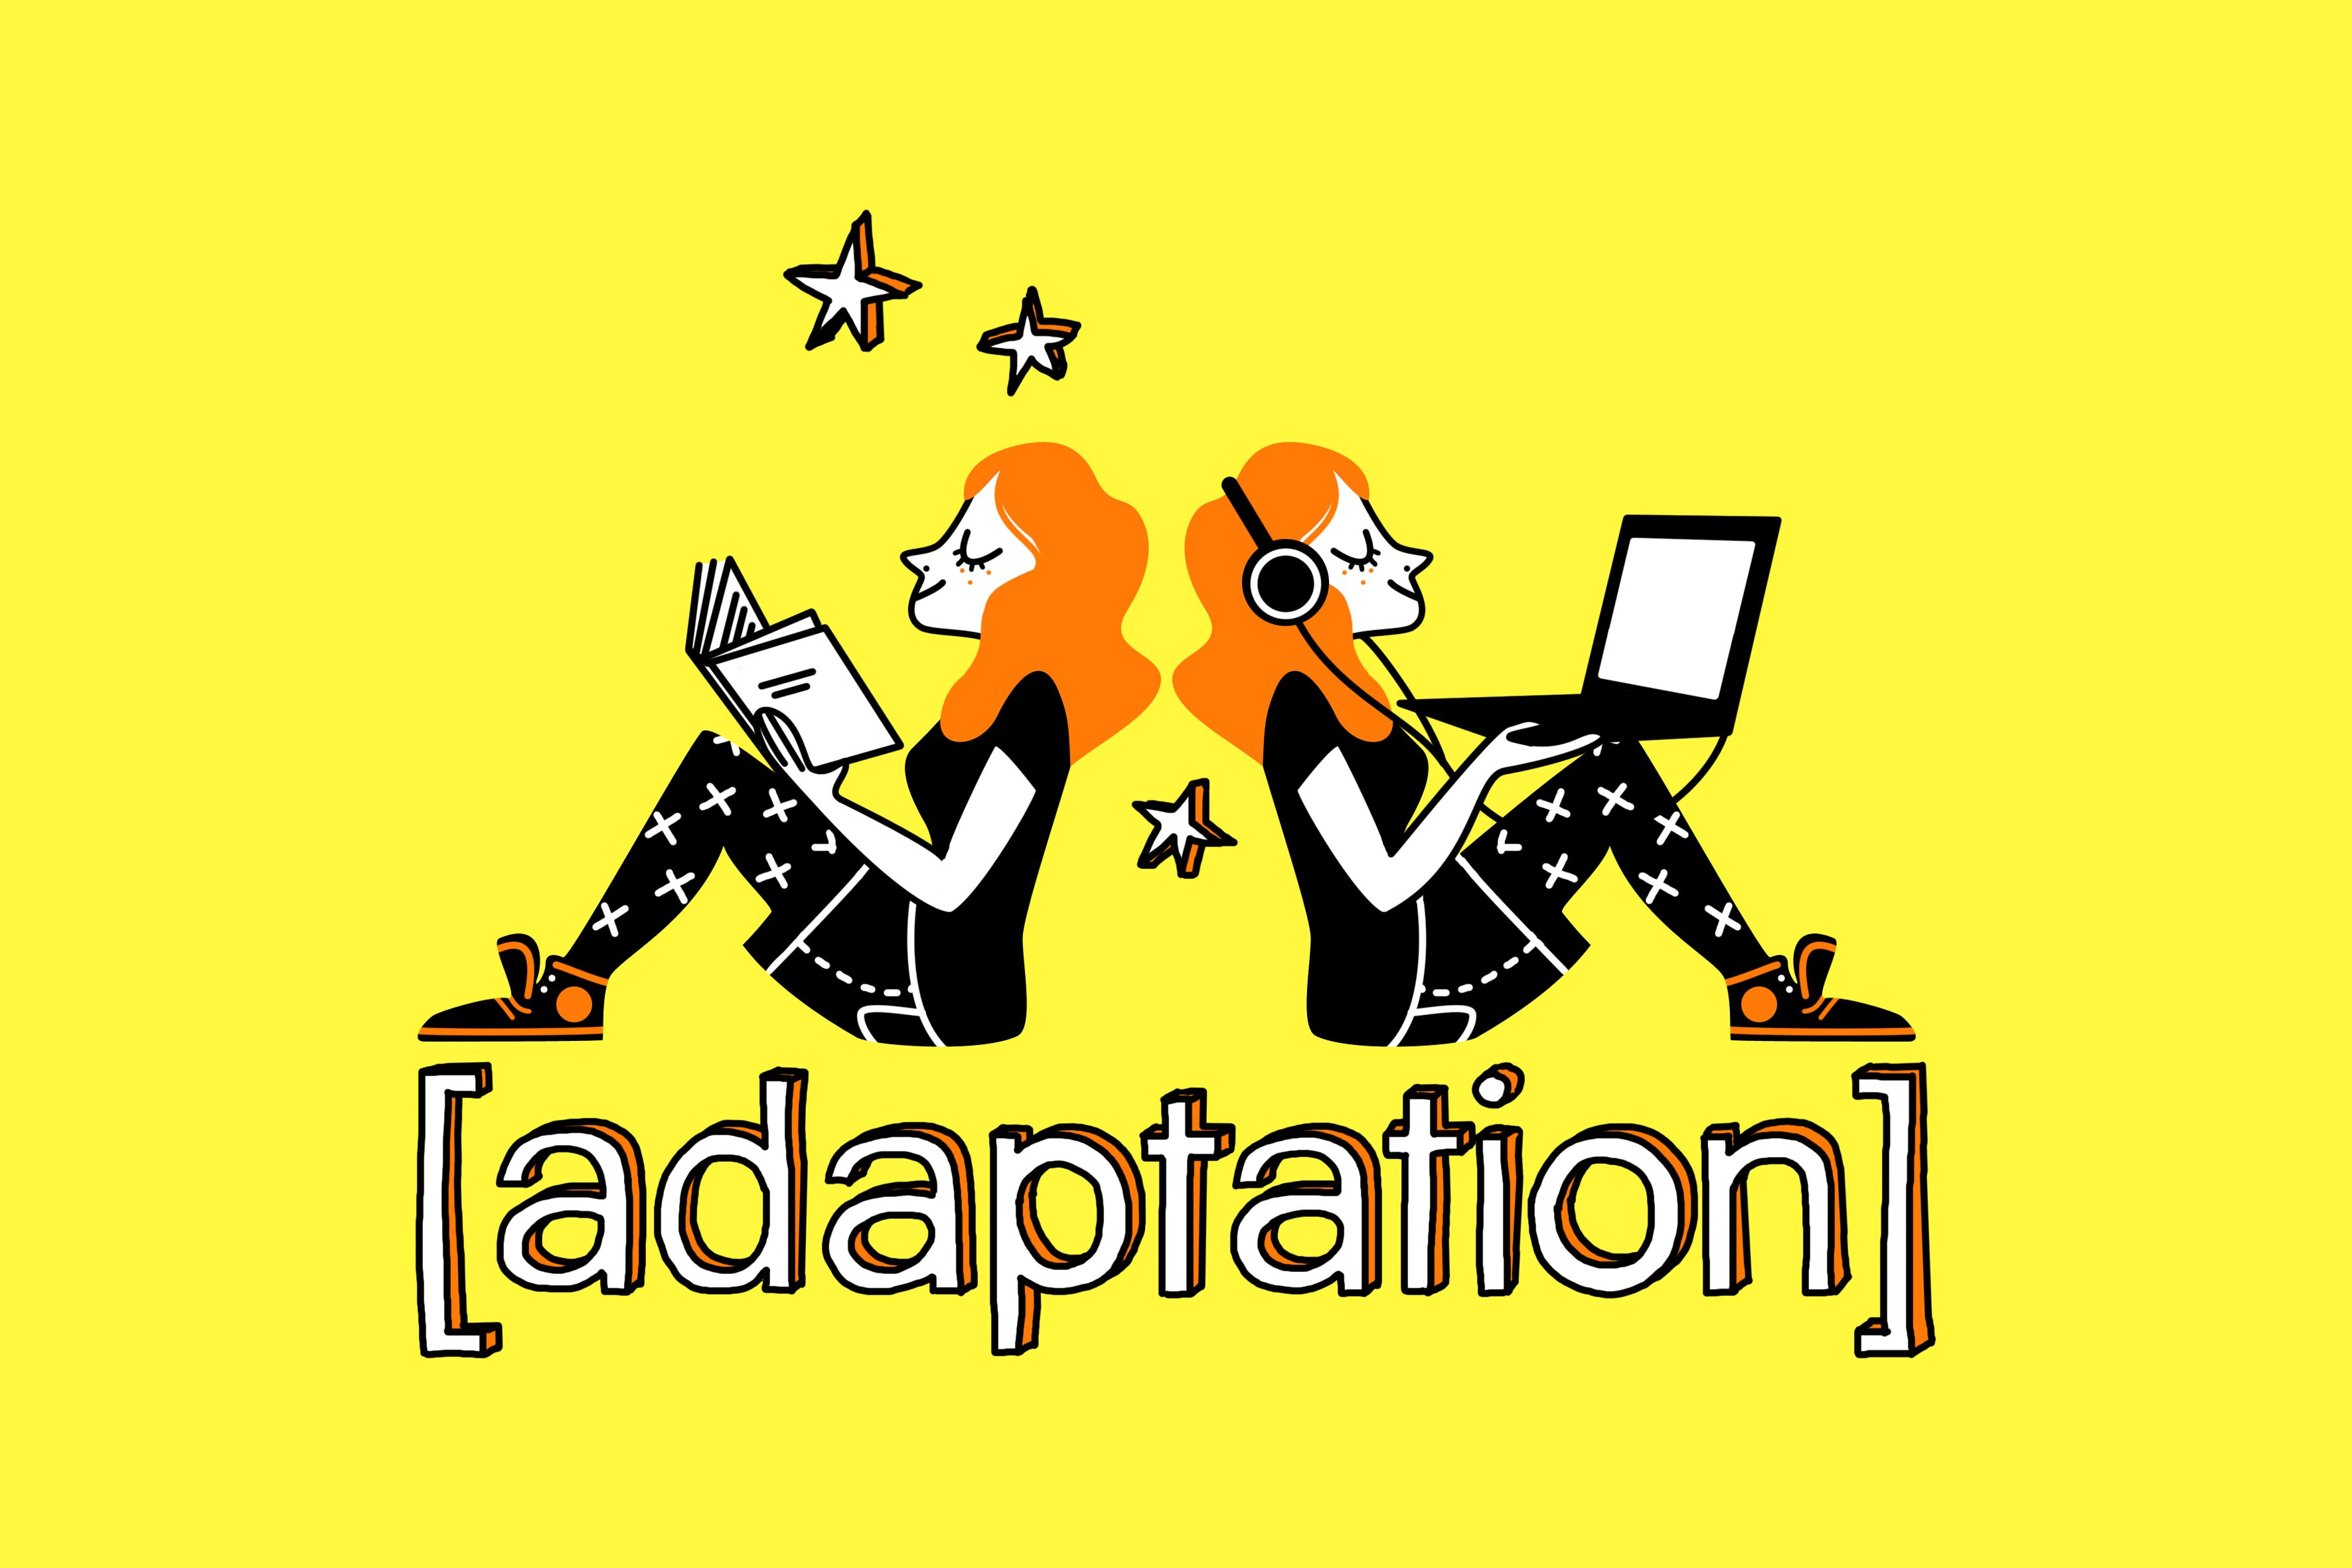 Adaptation - Émission Web (2013) streaming VF gratuit complet